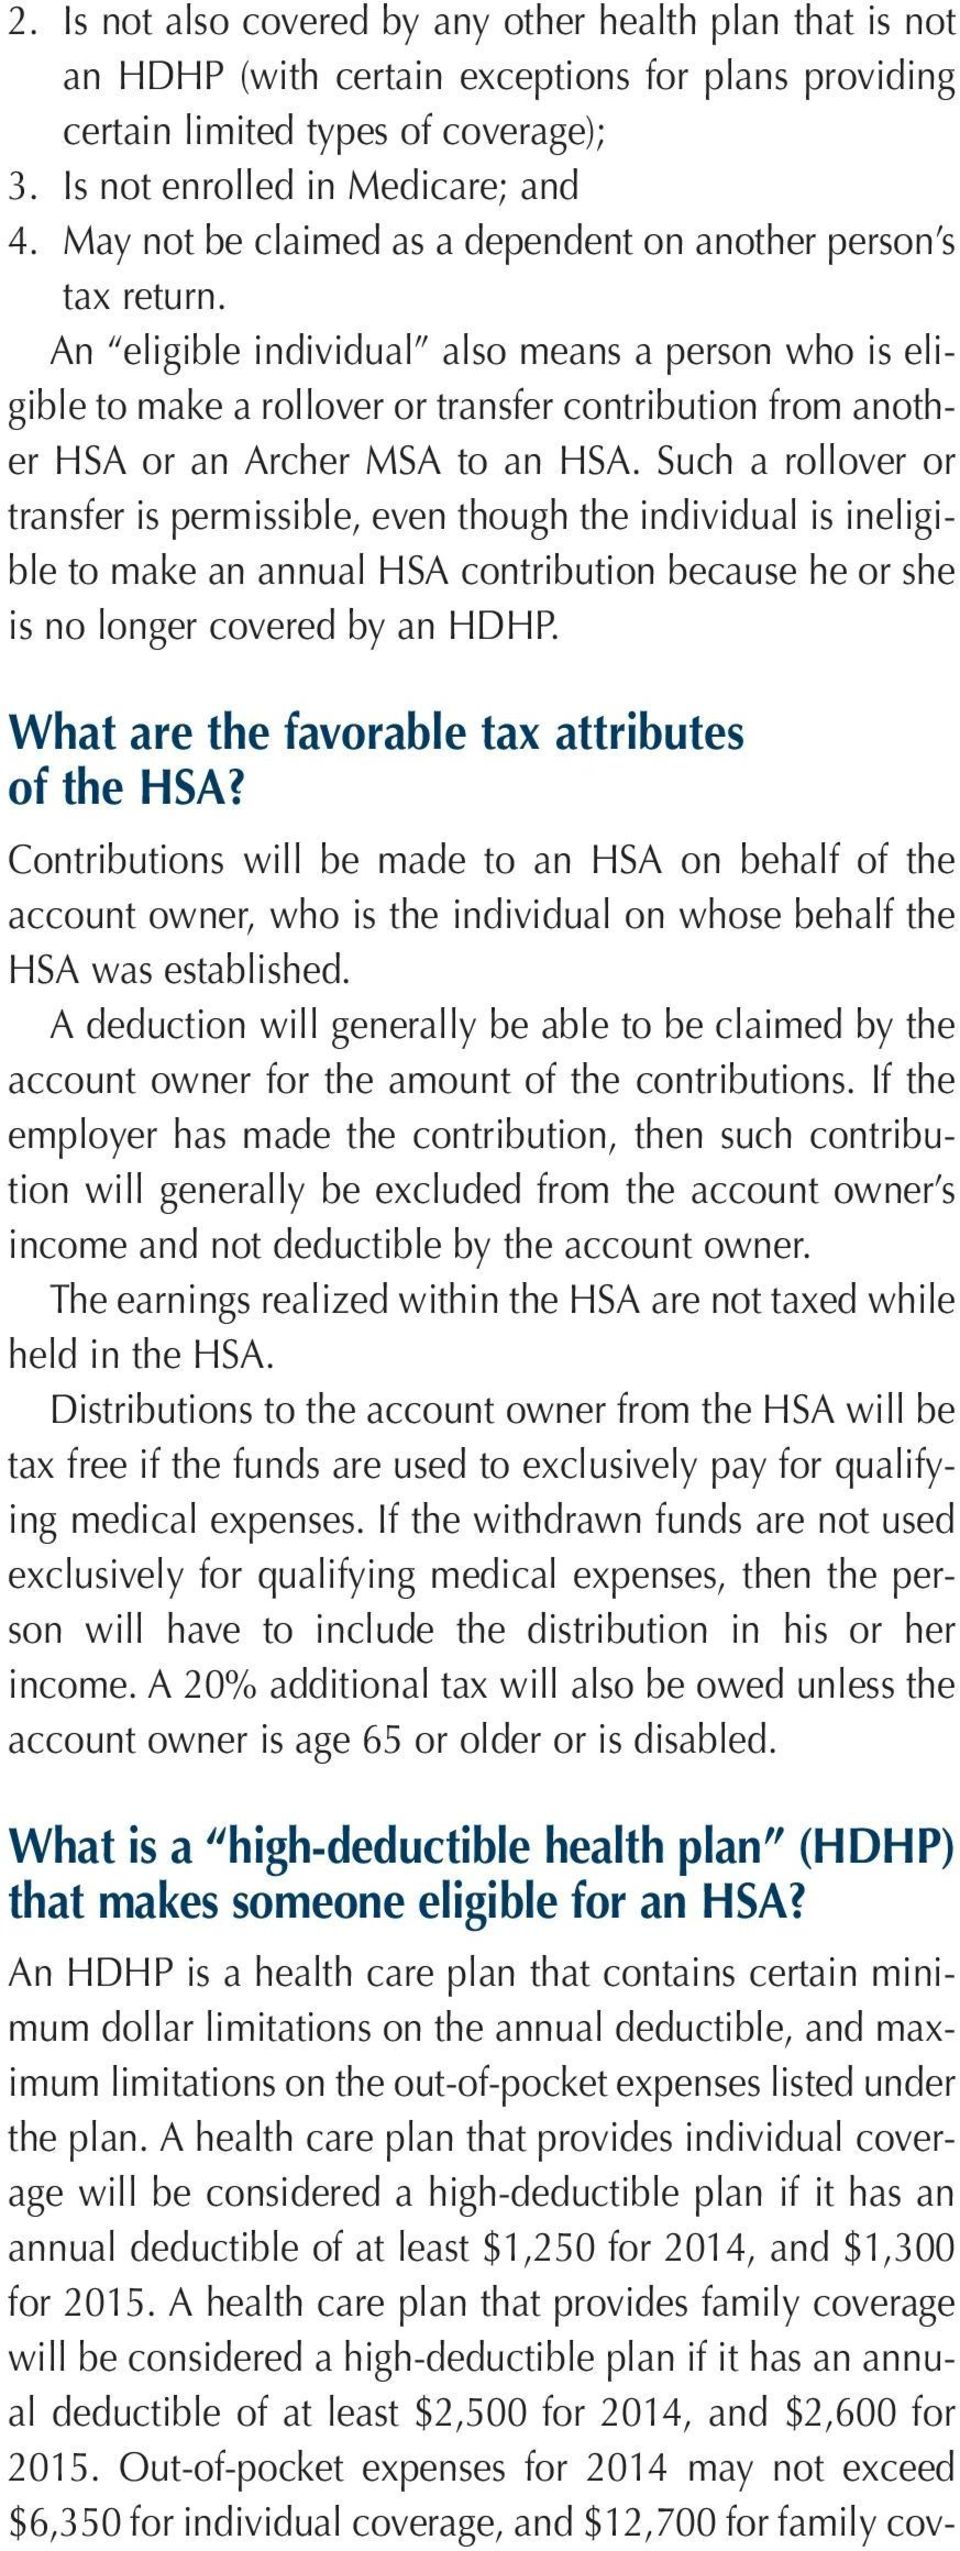 An eligible individual also means a person who is eligible to make a rollover or transfer contribution from another HSA or an Archer MSA to an HSA.